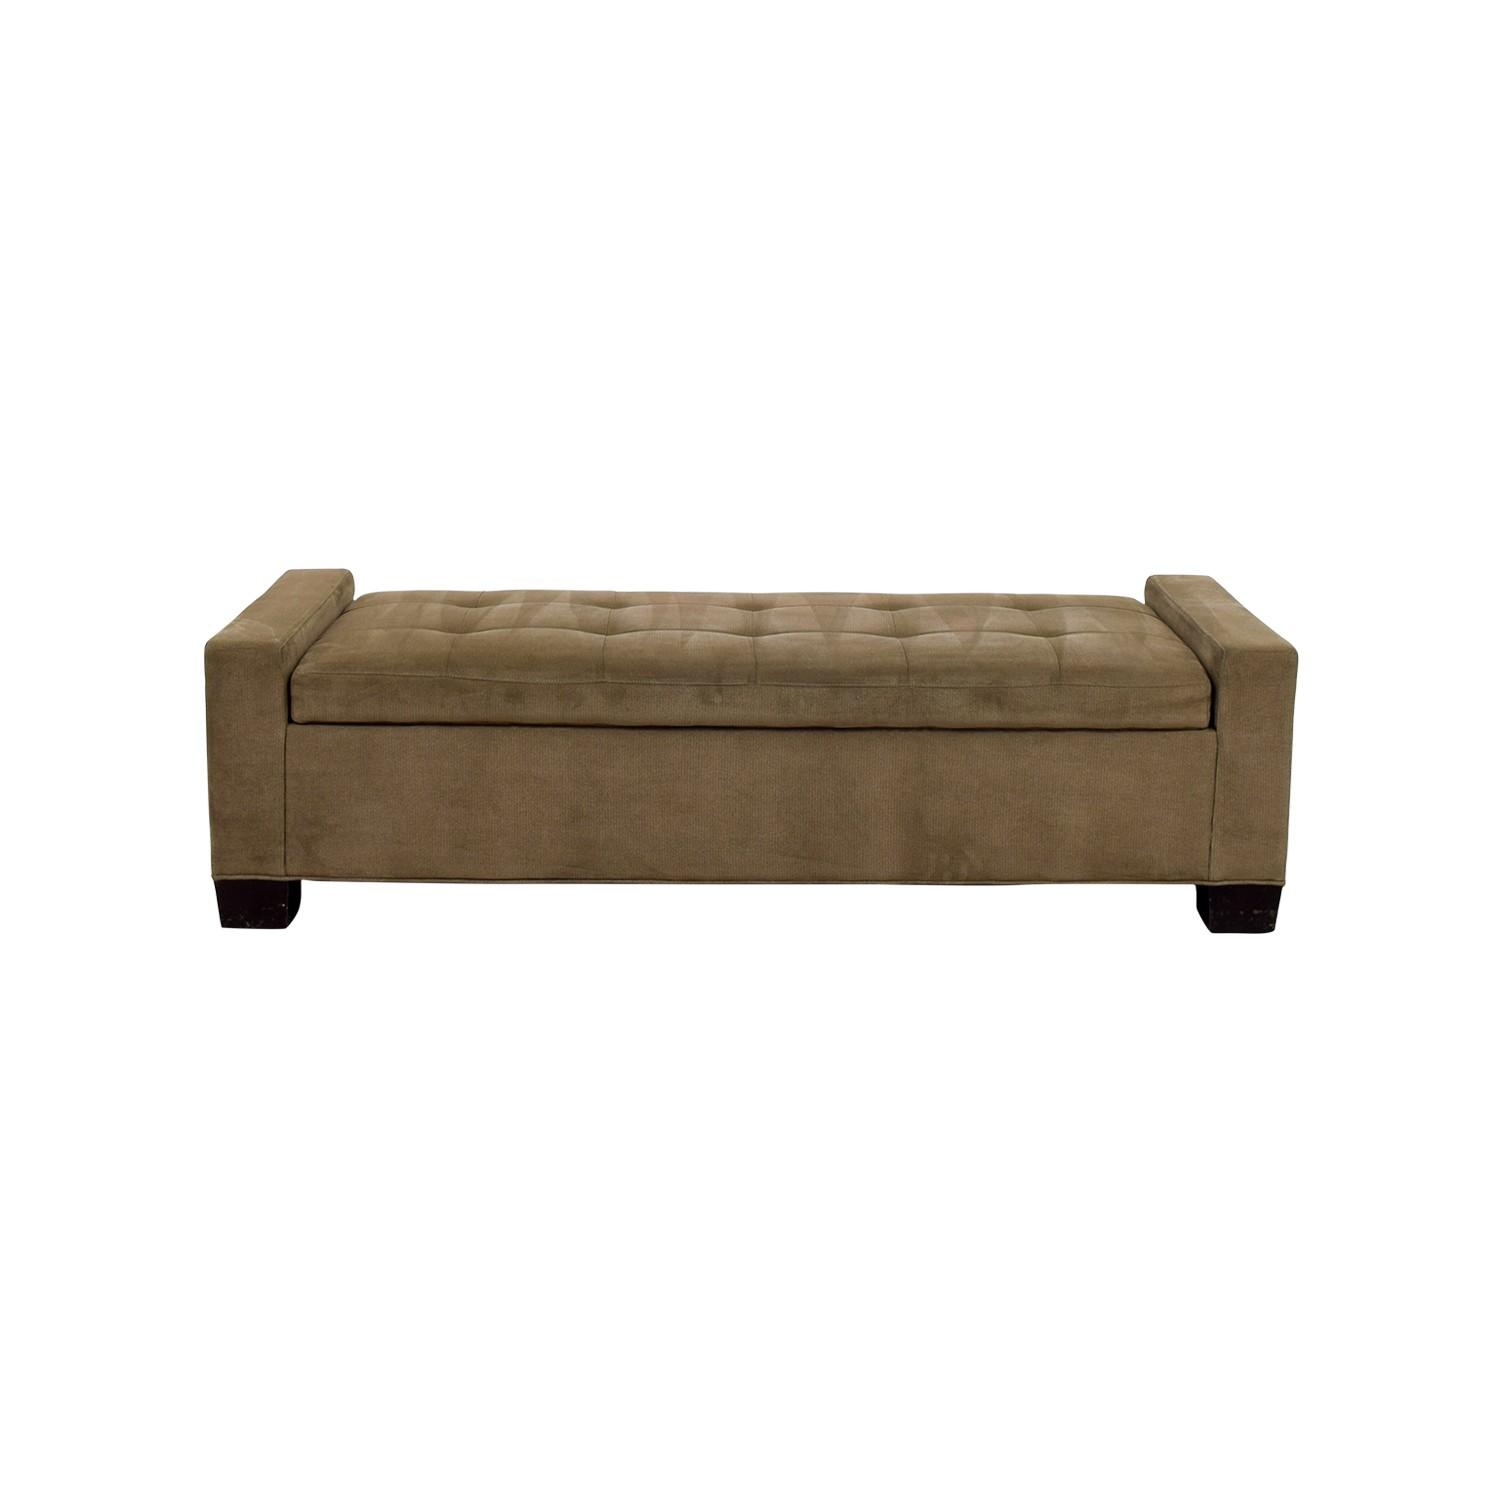 Crate & Barrel Brown Tufted Daybed/Storage Bench